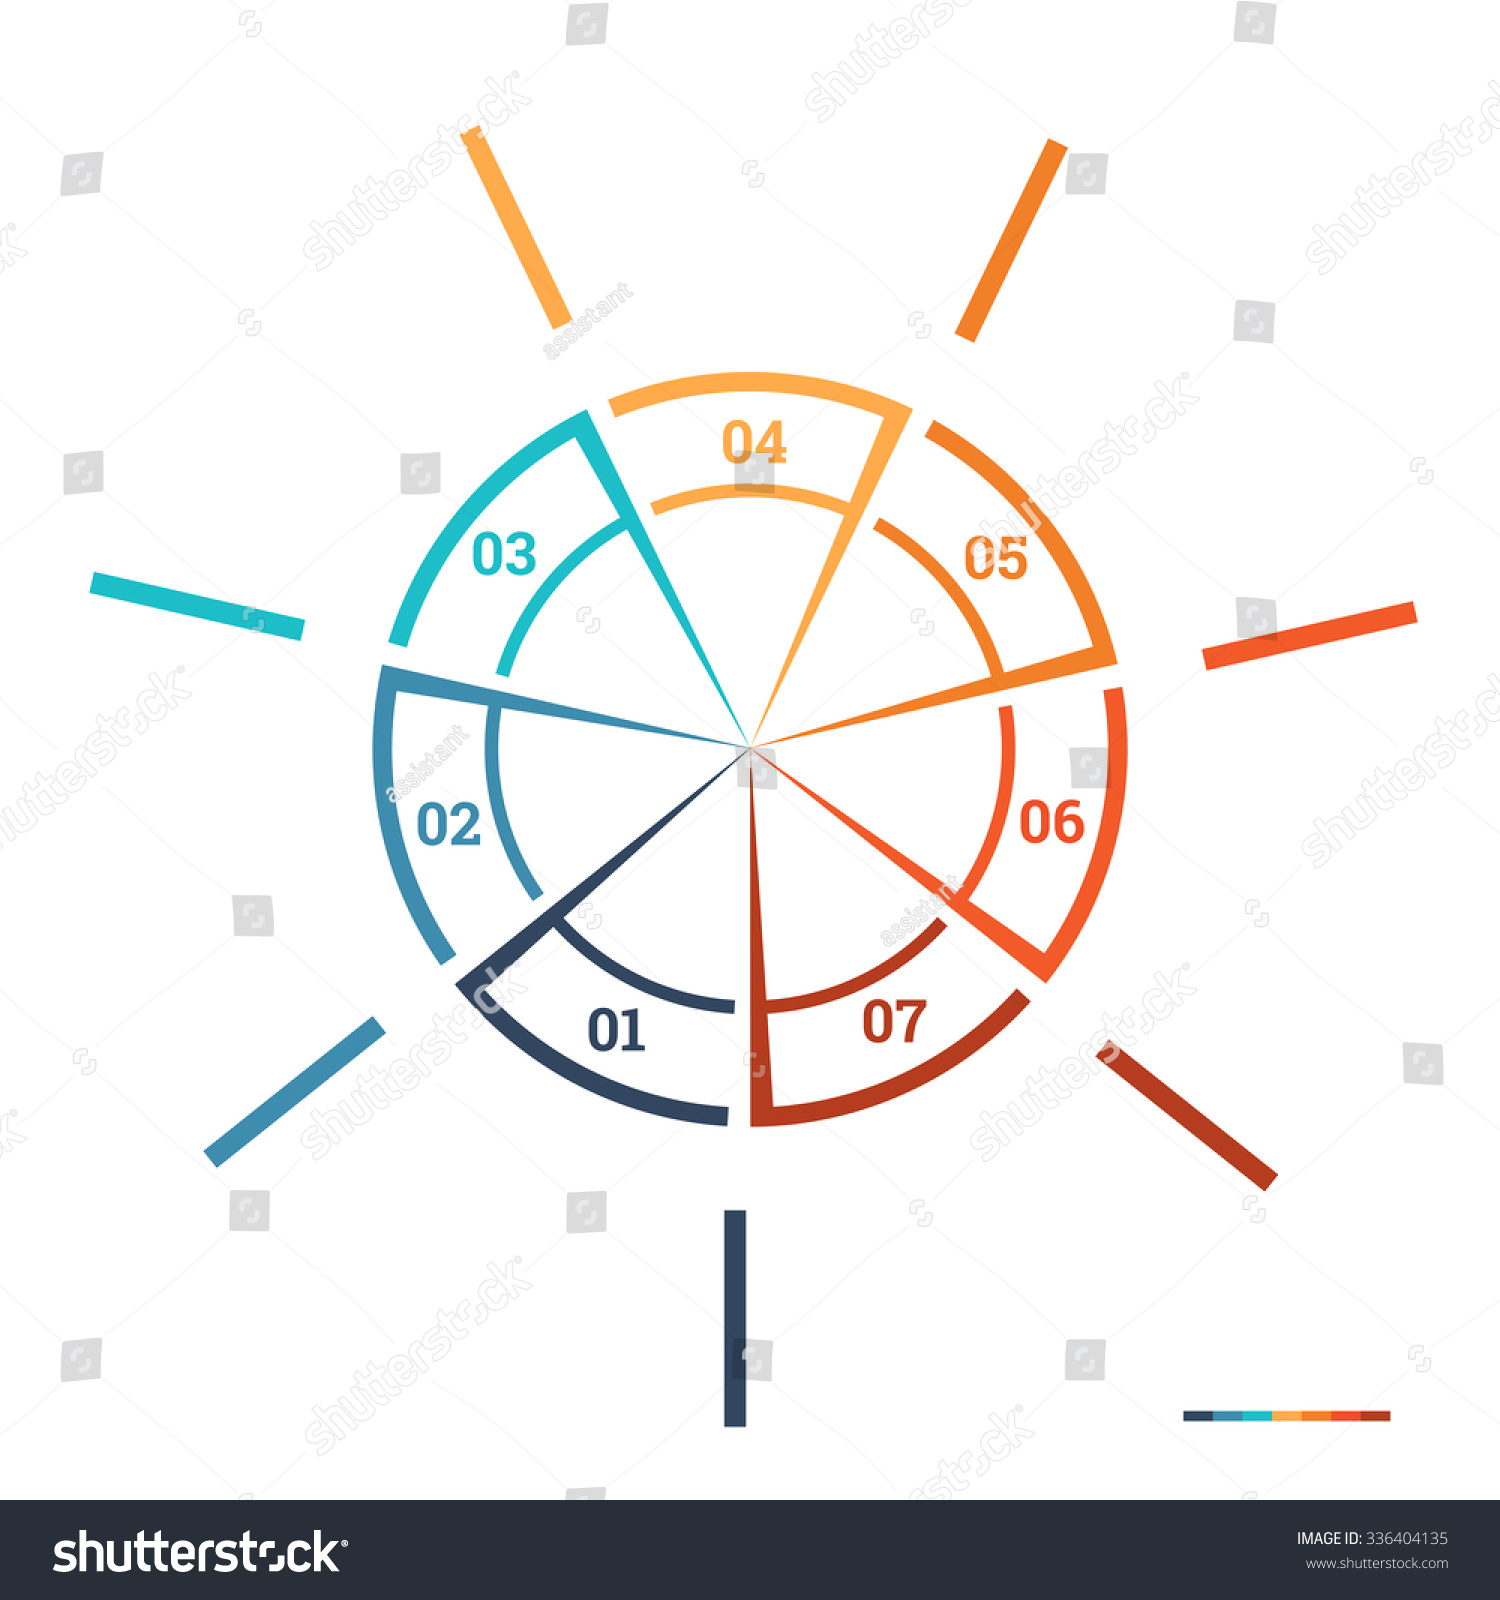 Infographic Pie Chart Template Colourful Circle Stock Illustration